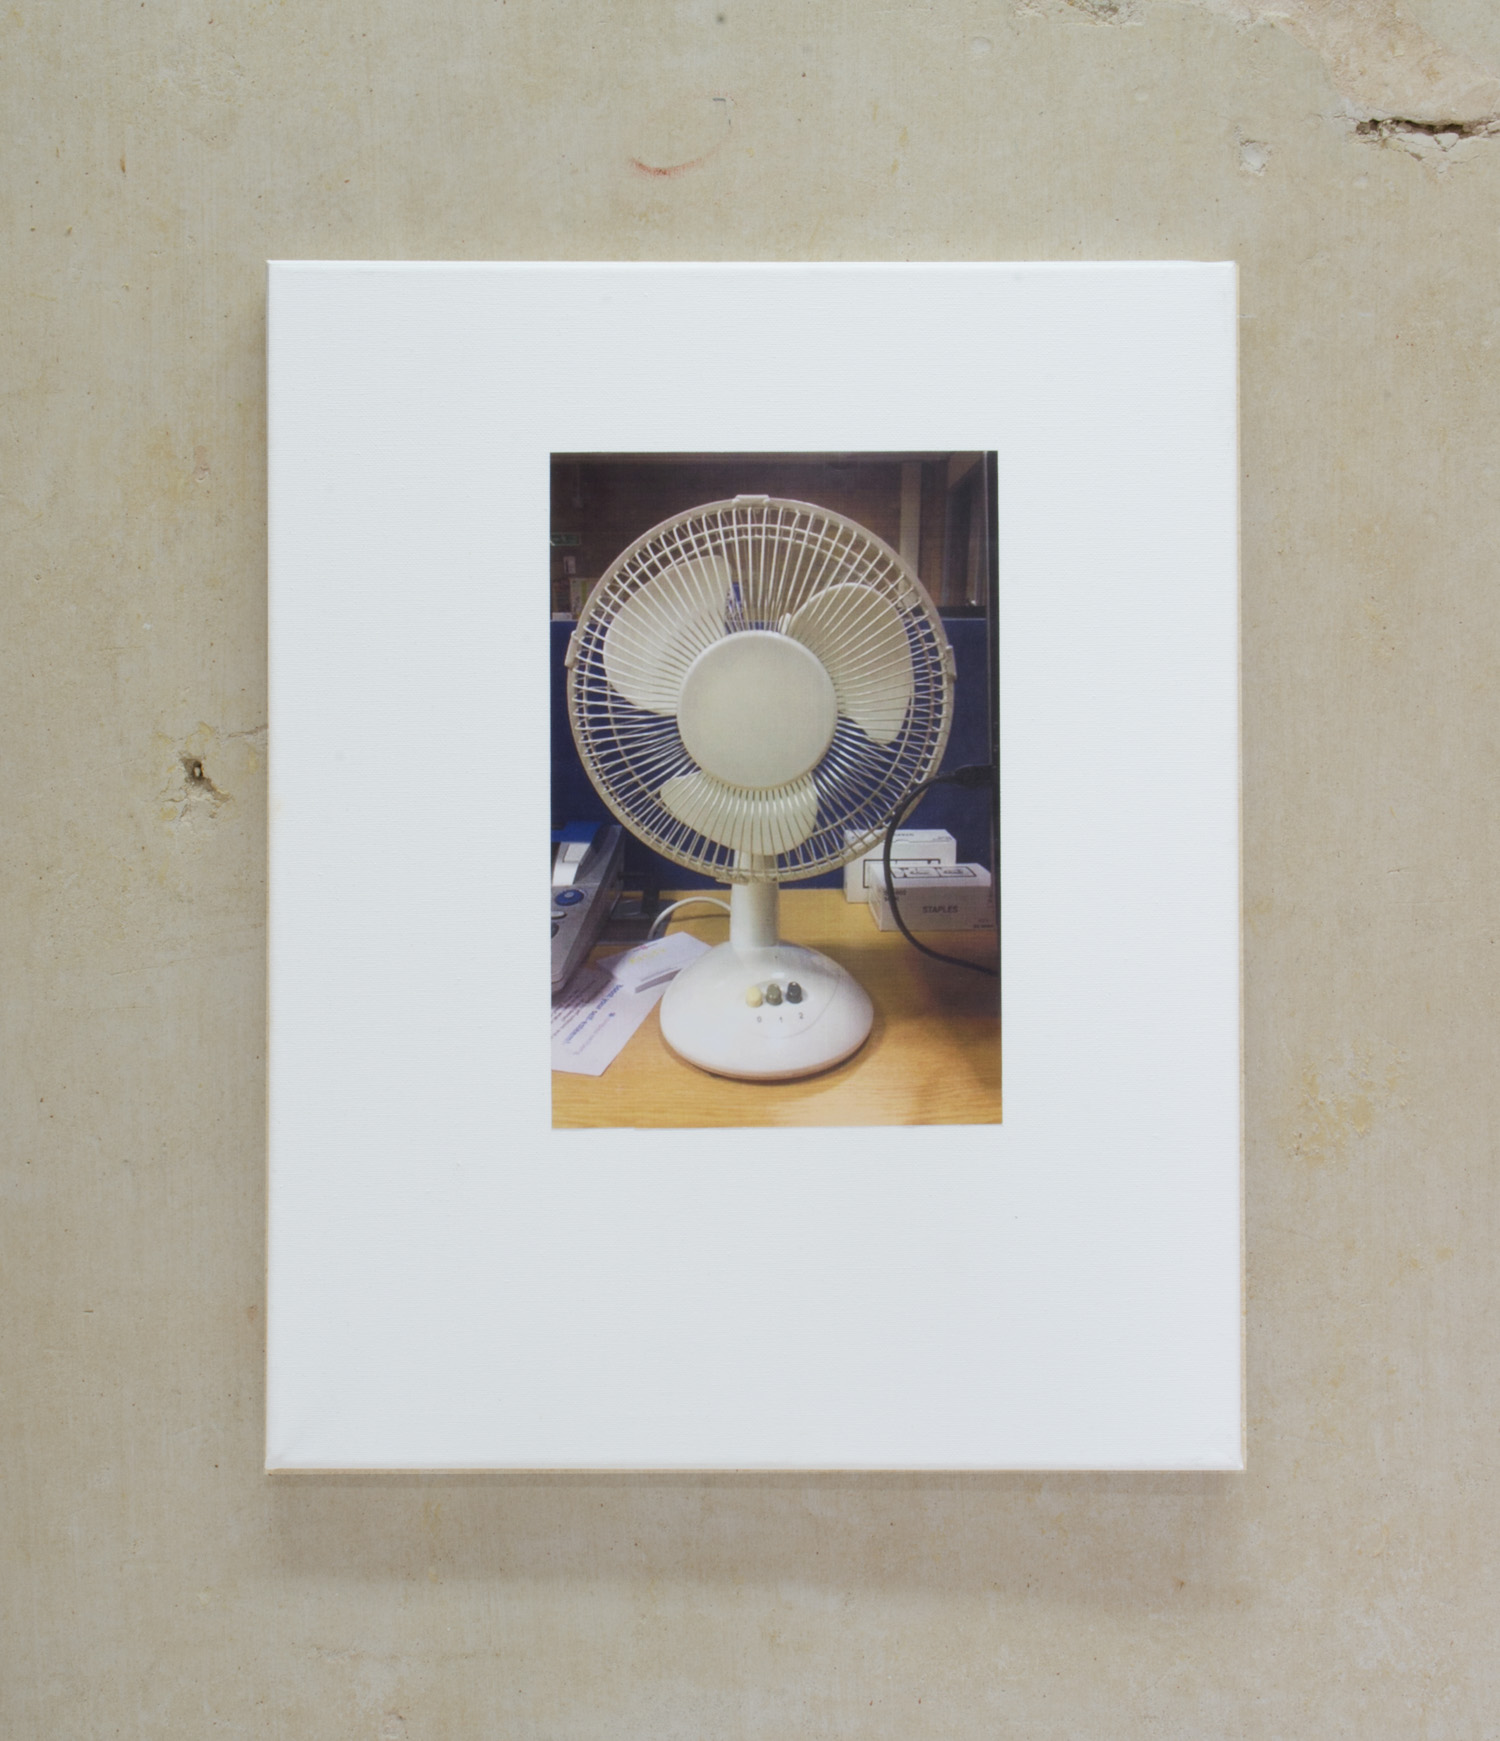 Fan, 2016, Inkjet print mounted on canvas, 51 x 41cm.